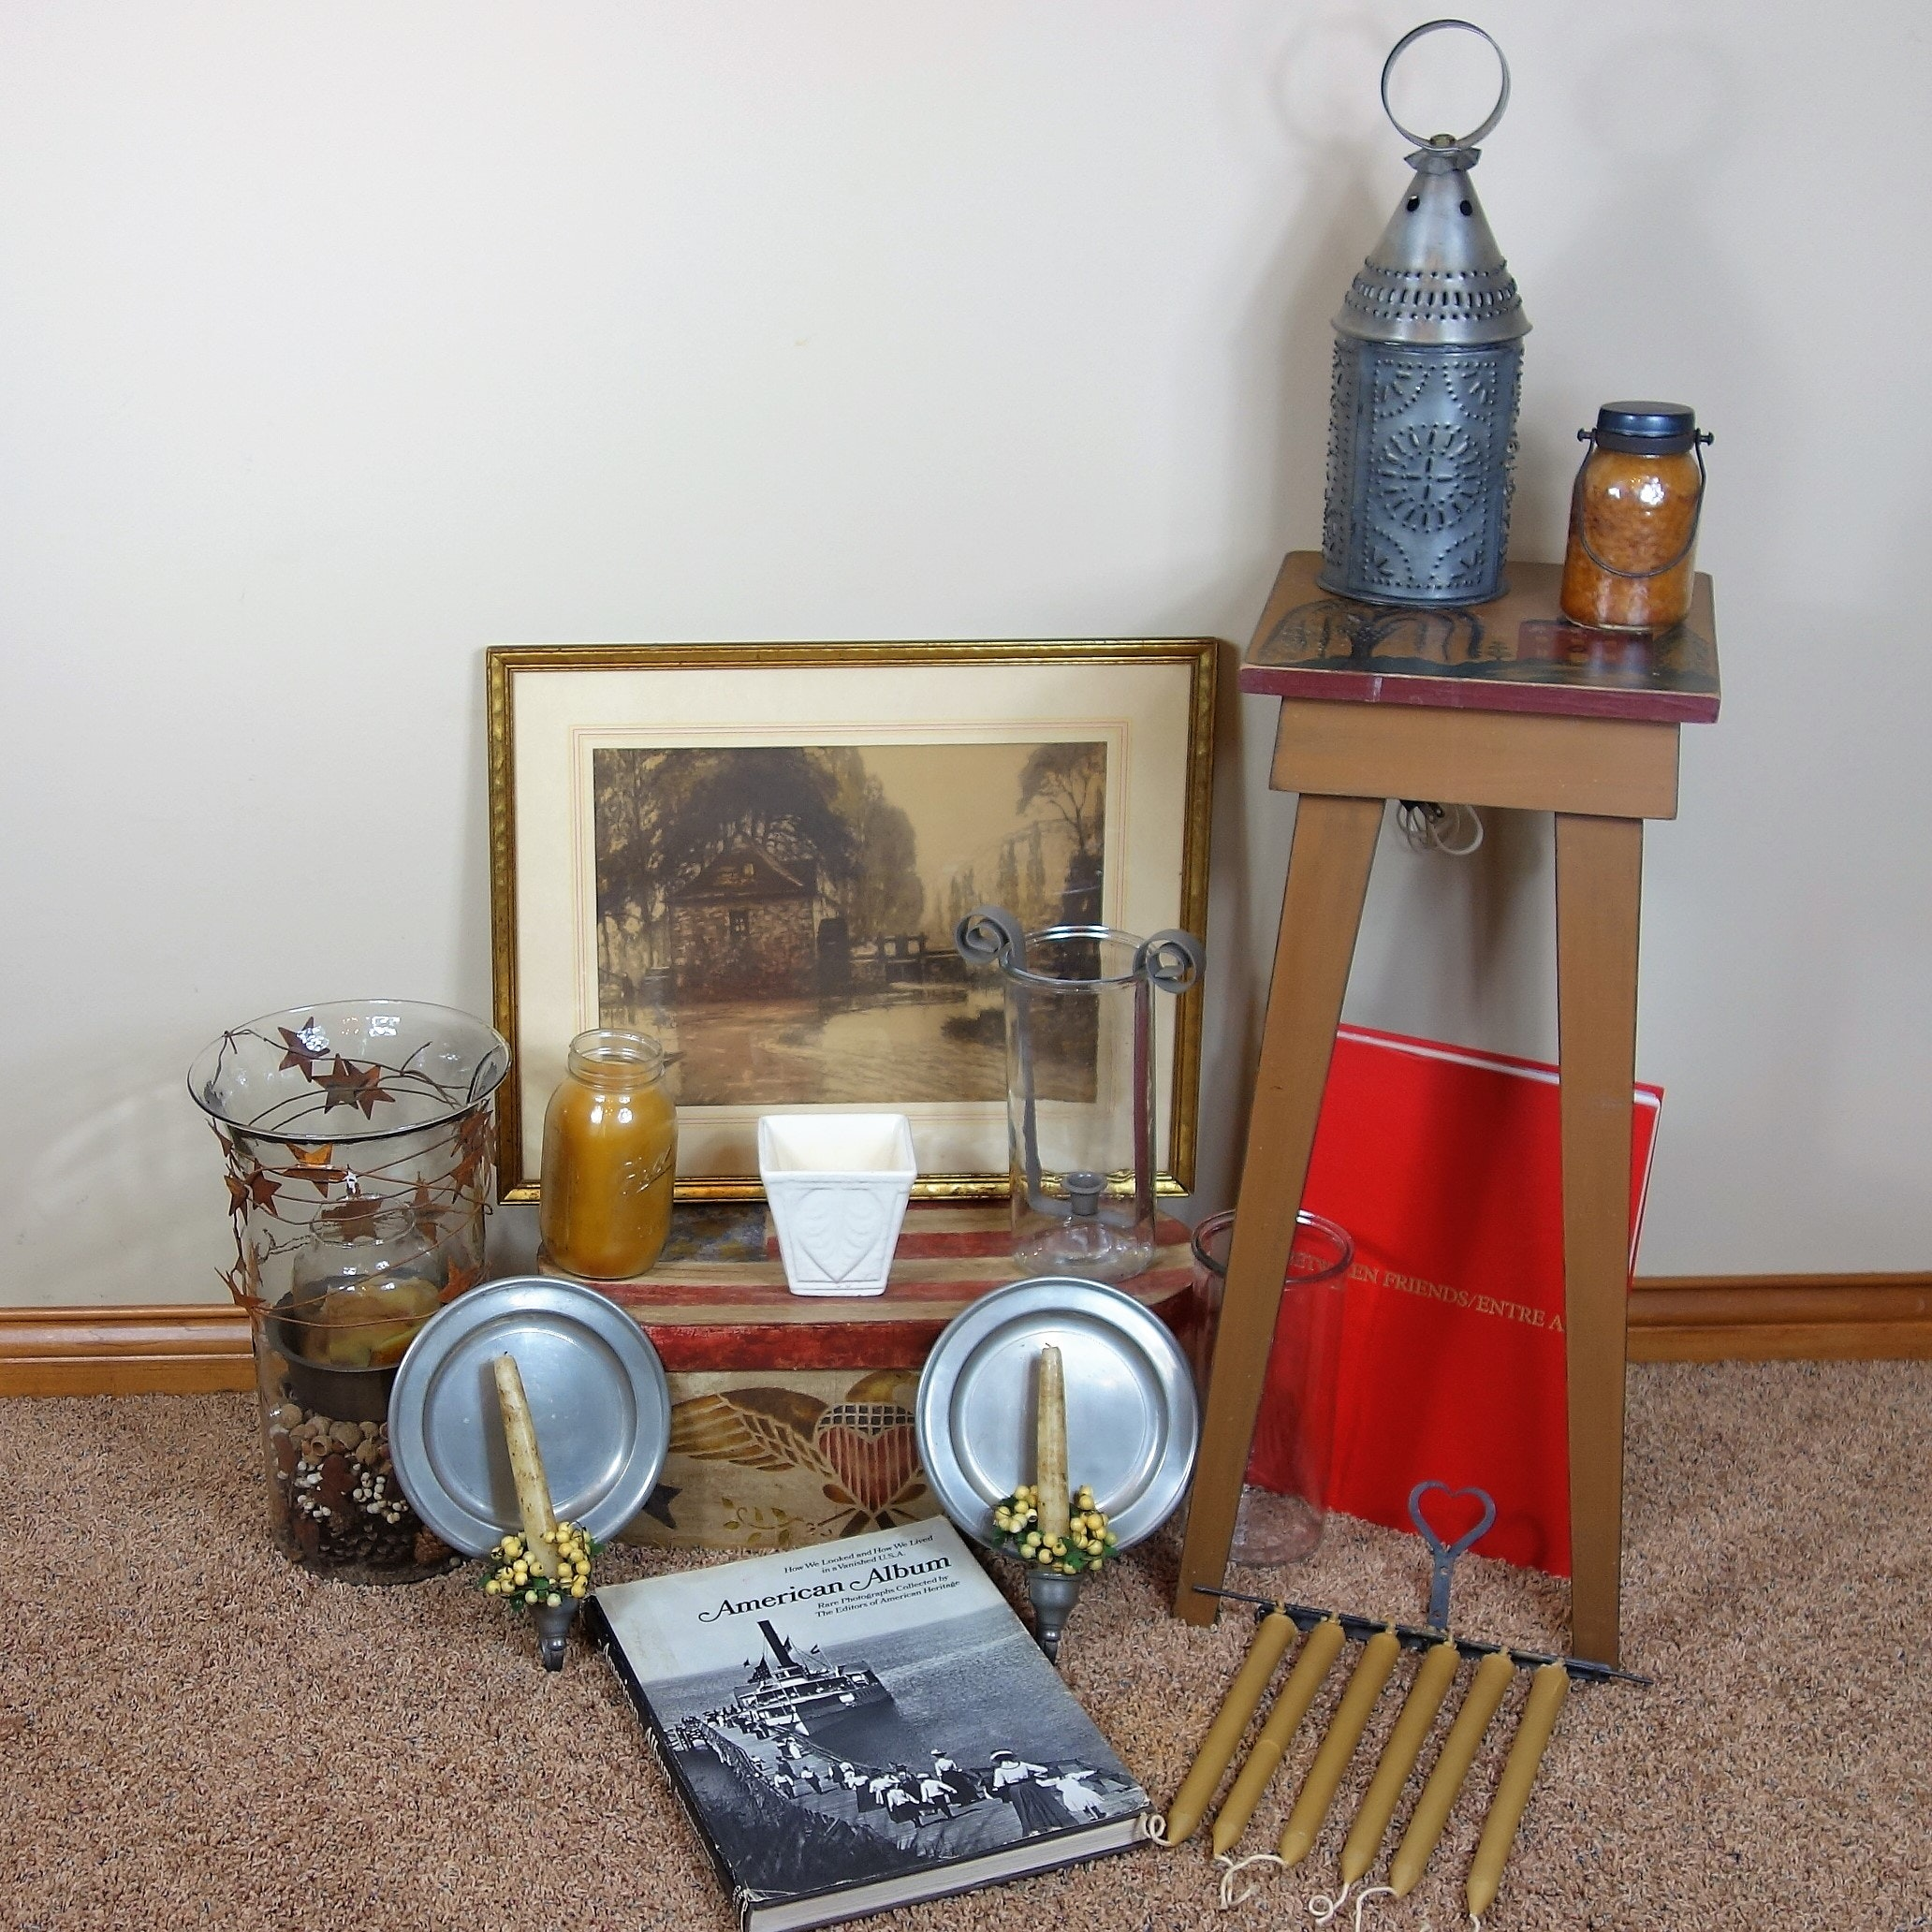 Hand Painted Wood Stool, Books, Accent Light and More